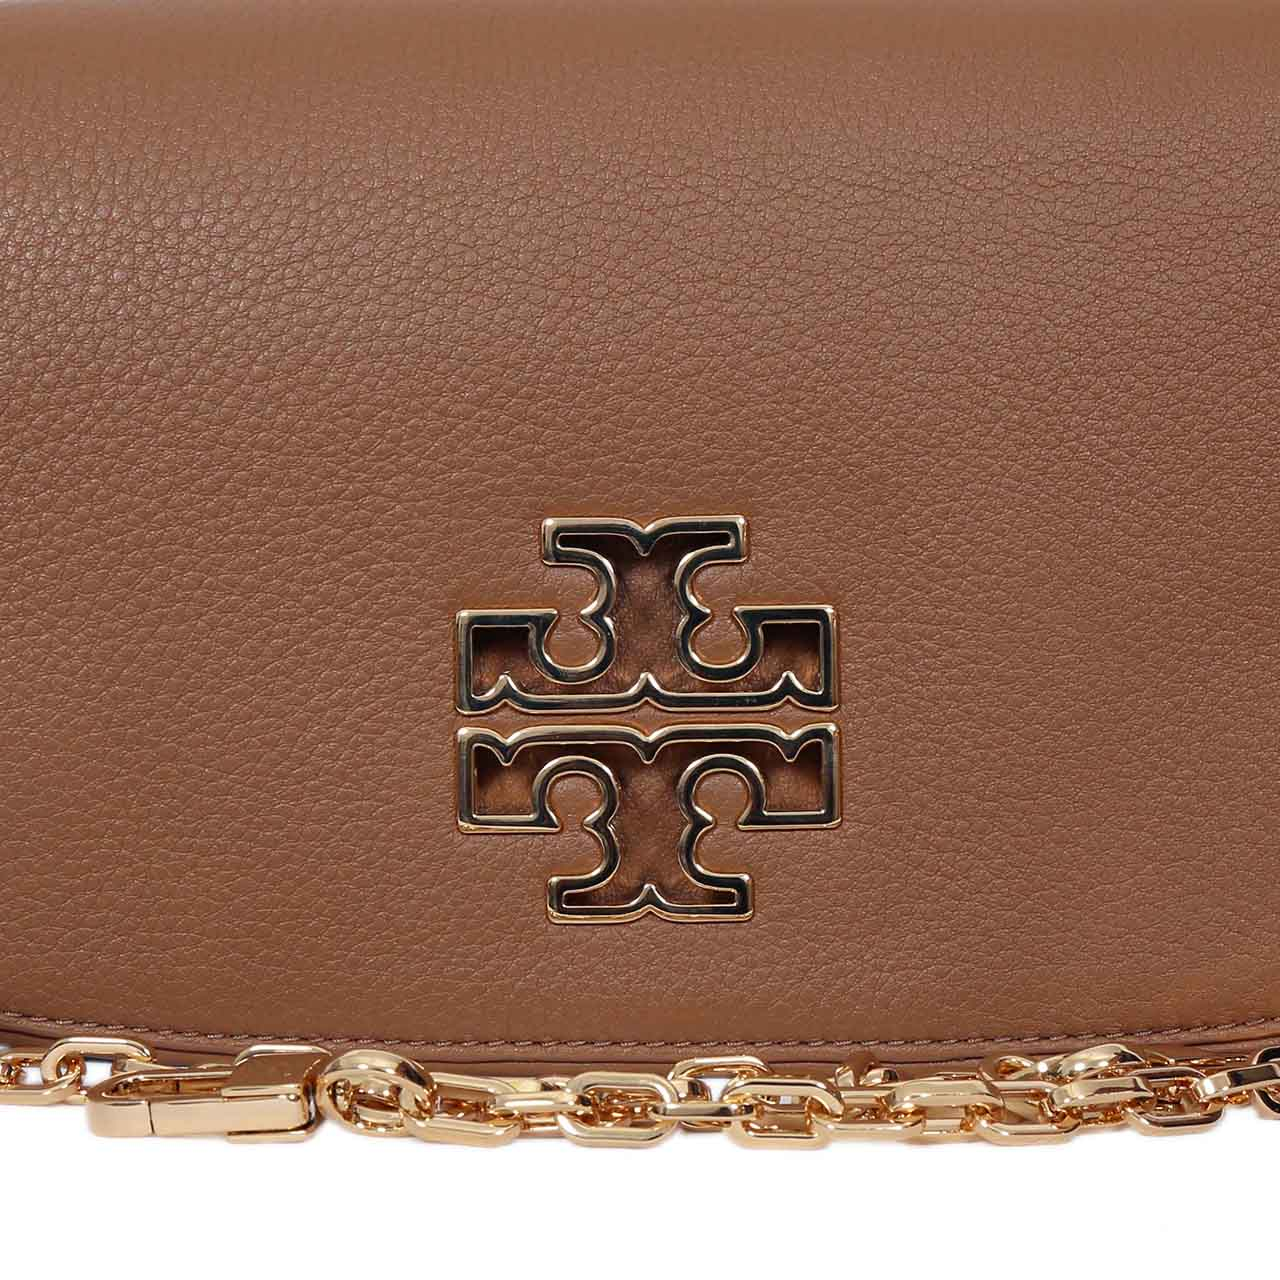 TORY BURCH BRITTEN CLUTCH CHAIN CROSS-BODY BAG